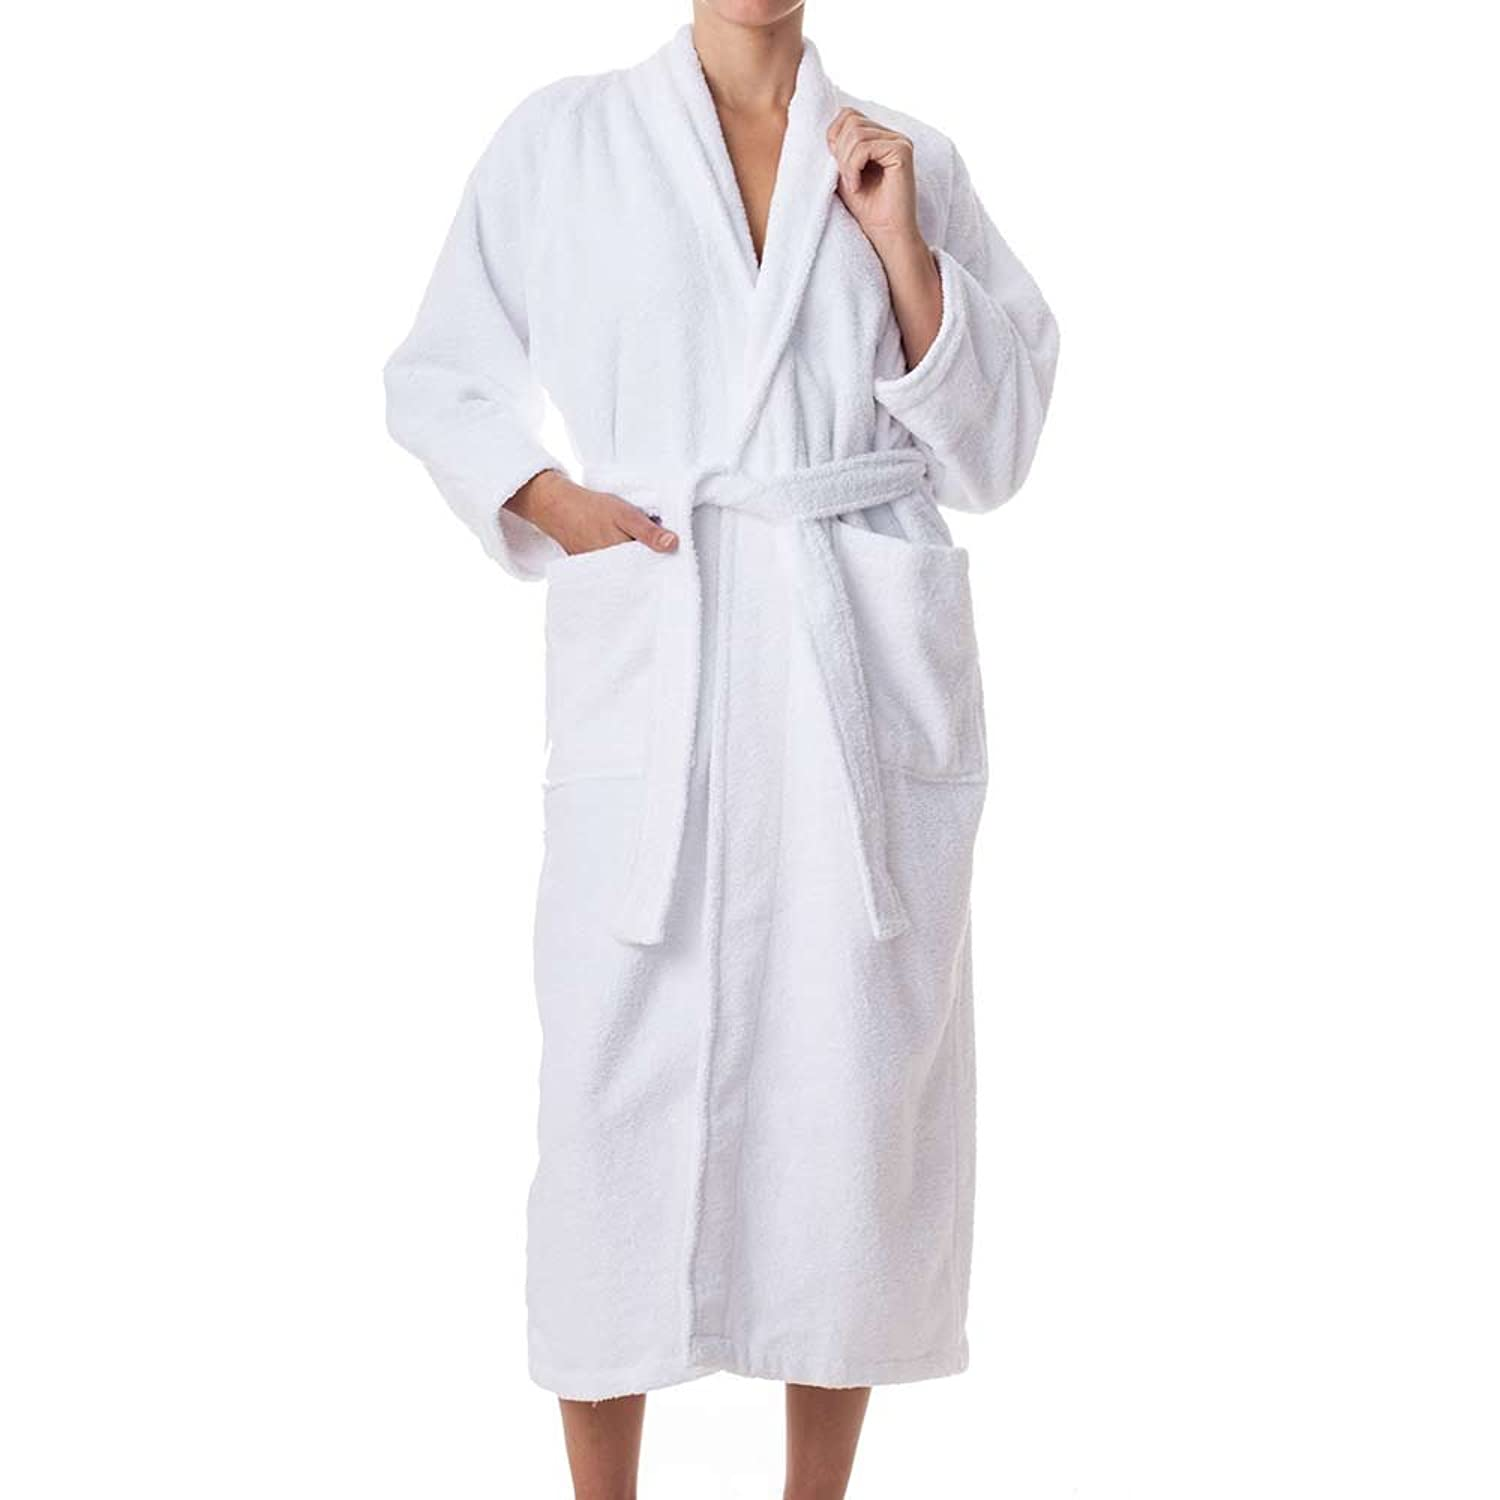 2be24b0af4 Unisex Terry Cloth Bathrobe- 100% Long Staple Cotton Hotel Spa Robes - Classic  Bath Robes For Men or Women